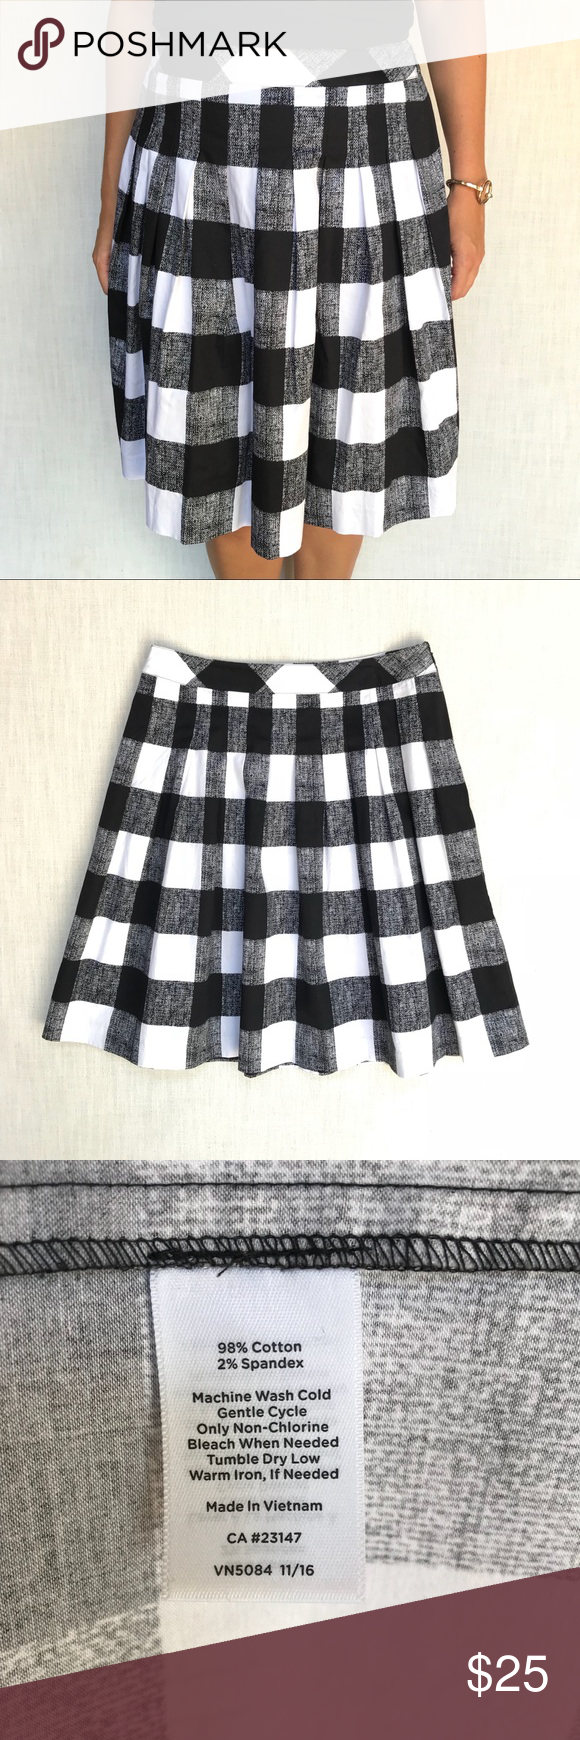 e2d61c01a1cb Talbots Black and White Box Pleated Skirt, A Line Great black and white  checkered, box pleated skirt by Talbots in size 10. This skirt is perfect  for the ...